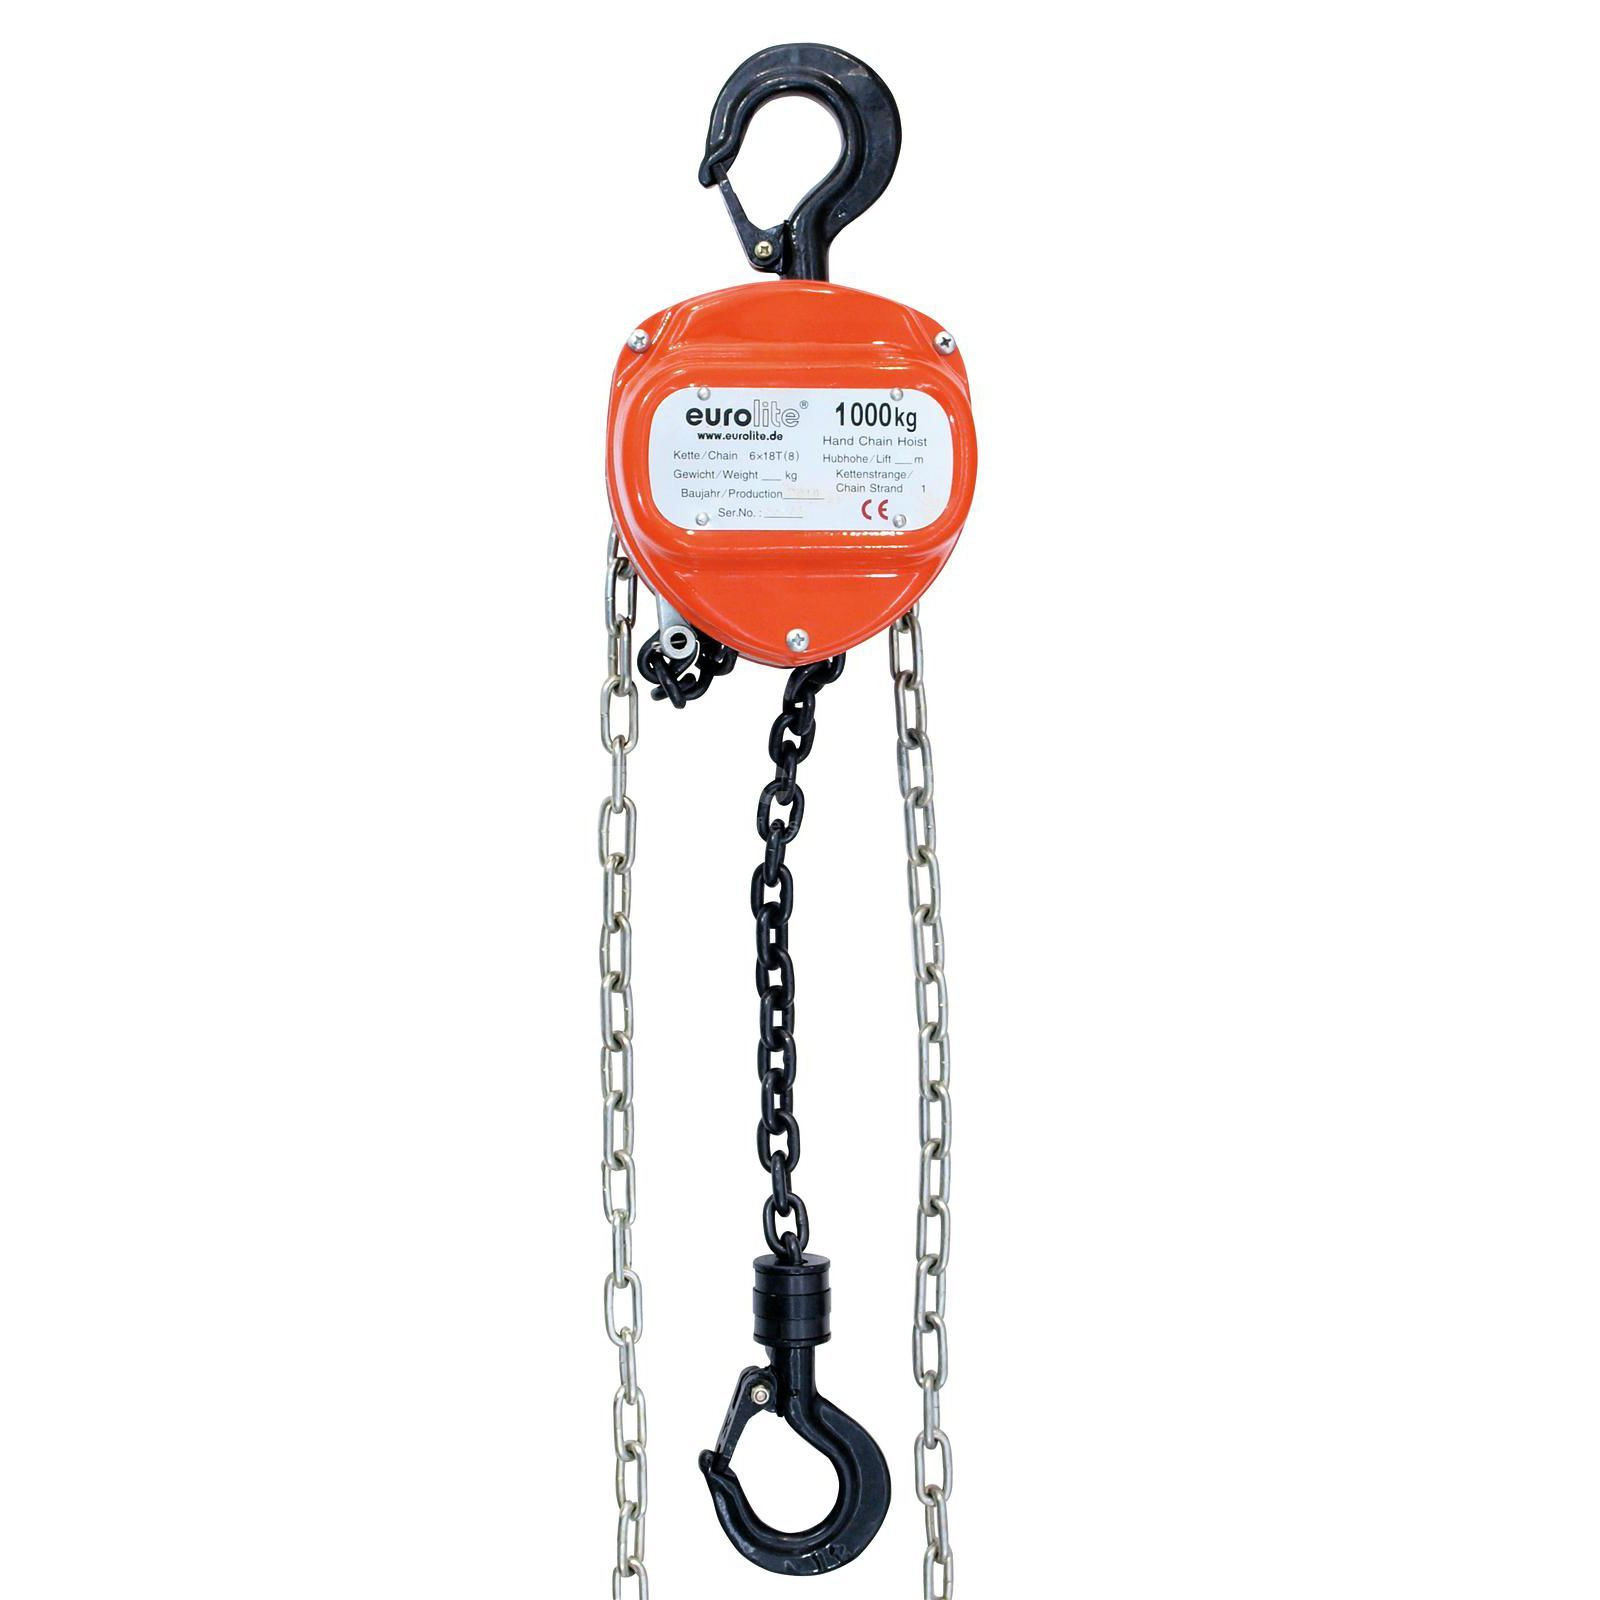 Eurolite Chain Hoist 10M/1.0T 1000kg, Lifting Height 10m Produktbillede